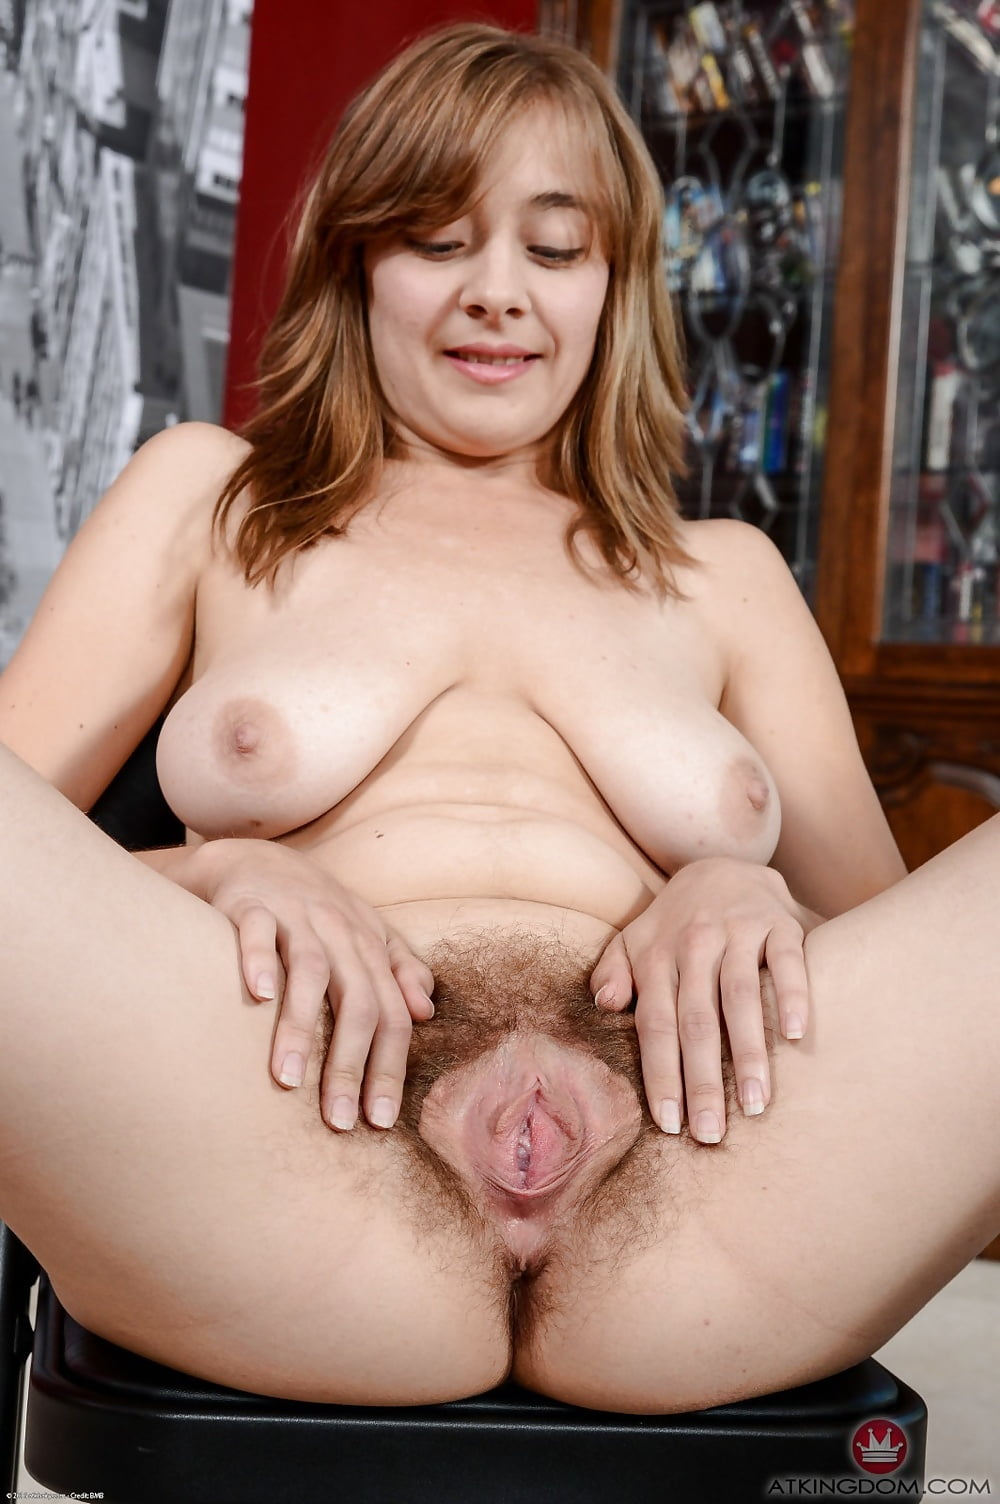 Puffy boobs hairy pussy, naked witchcraft